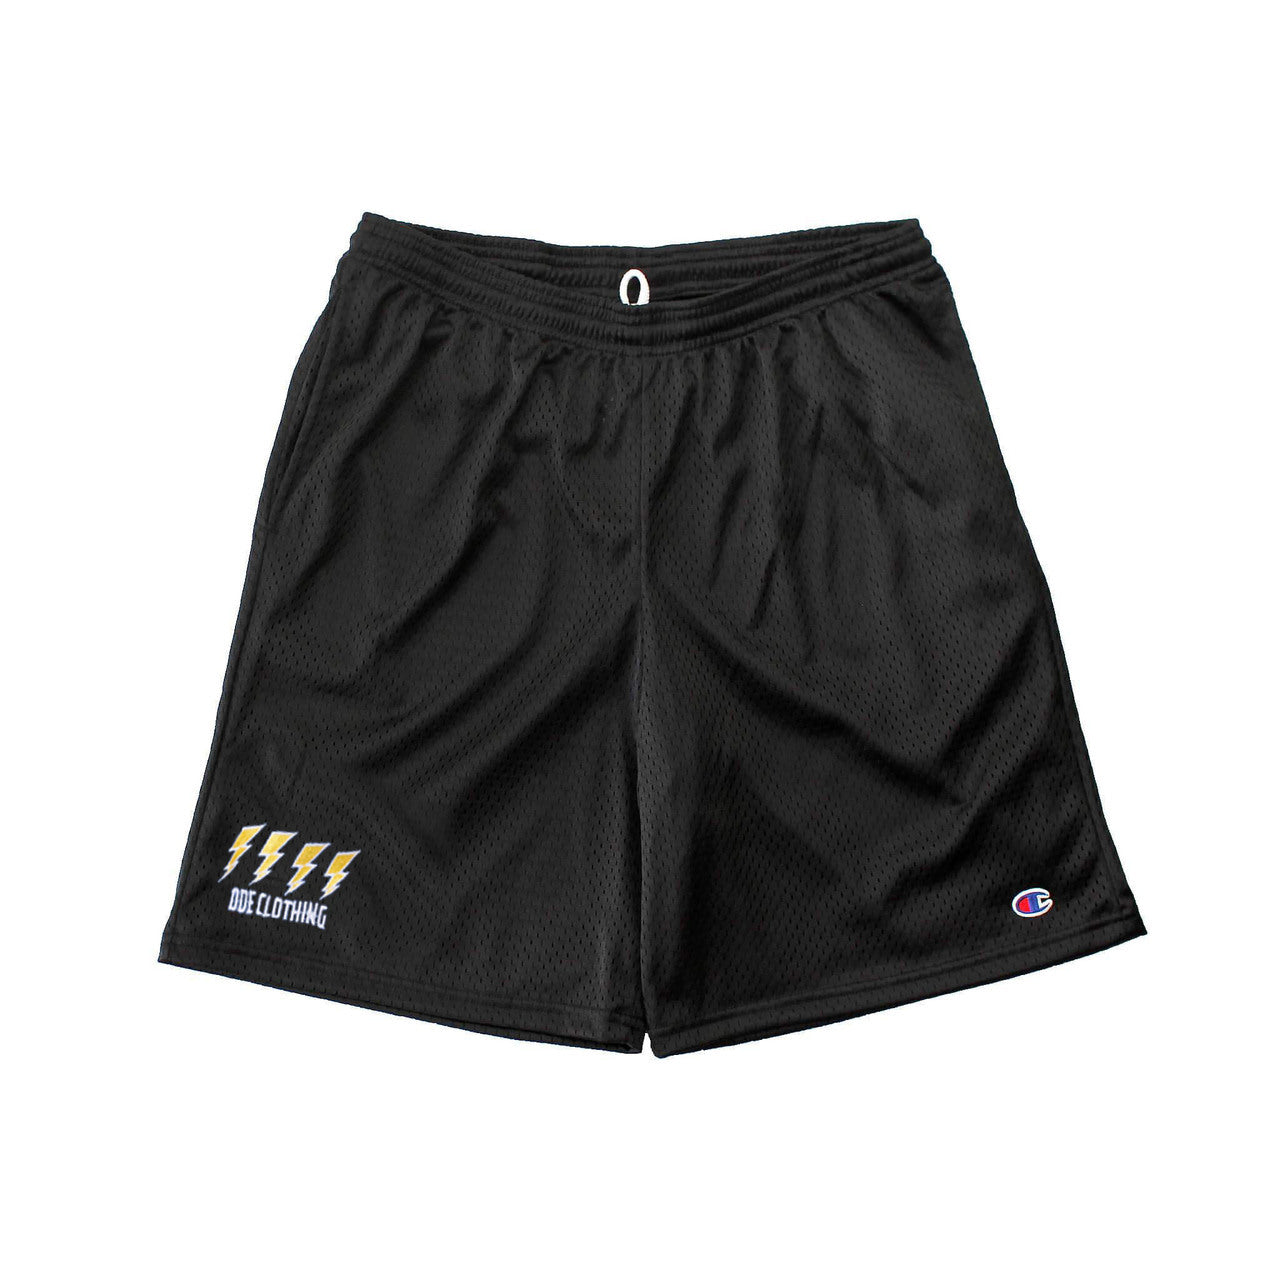 The Ode Lightning Champion Gym Shorts With Pockets- Black